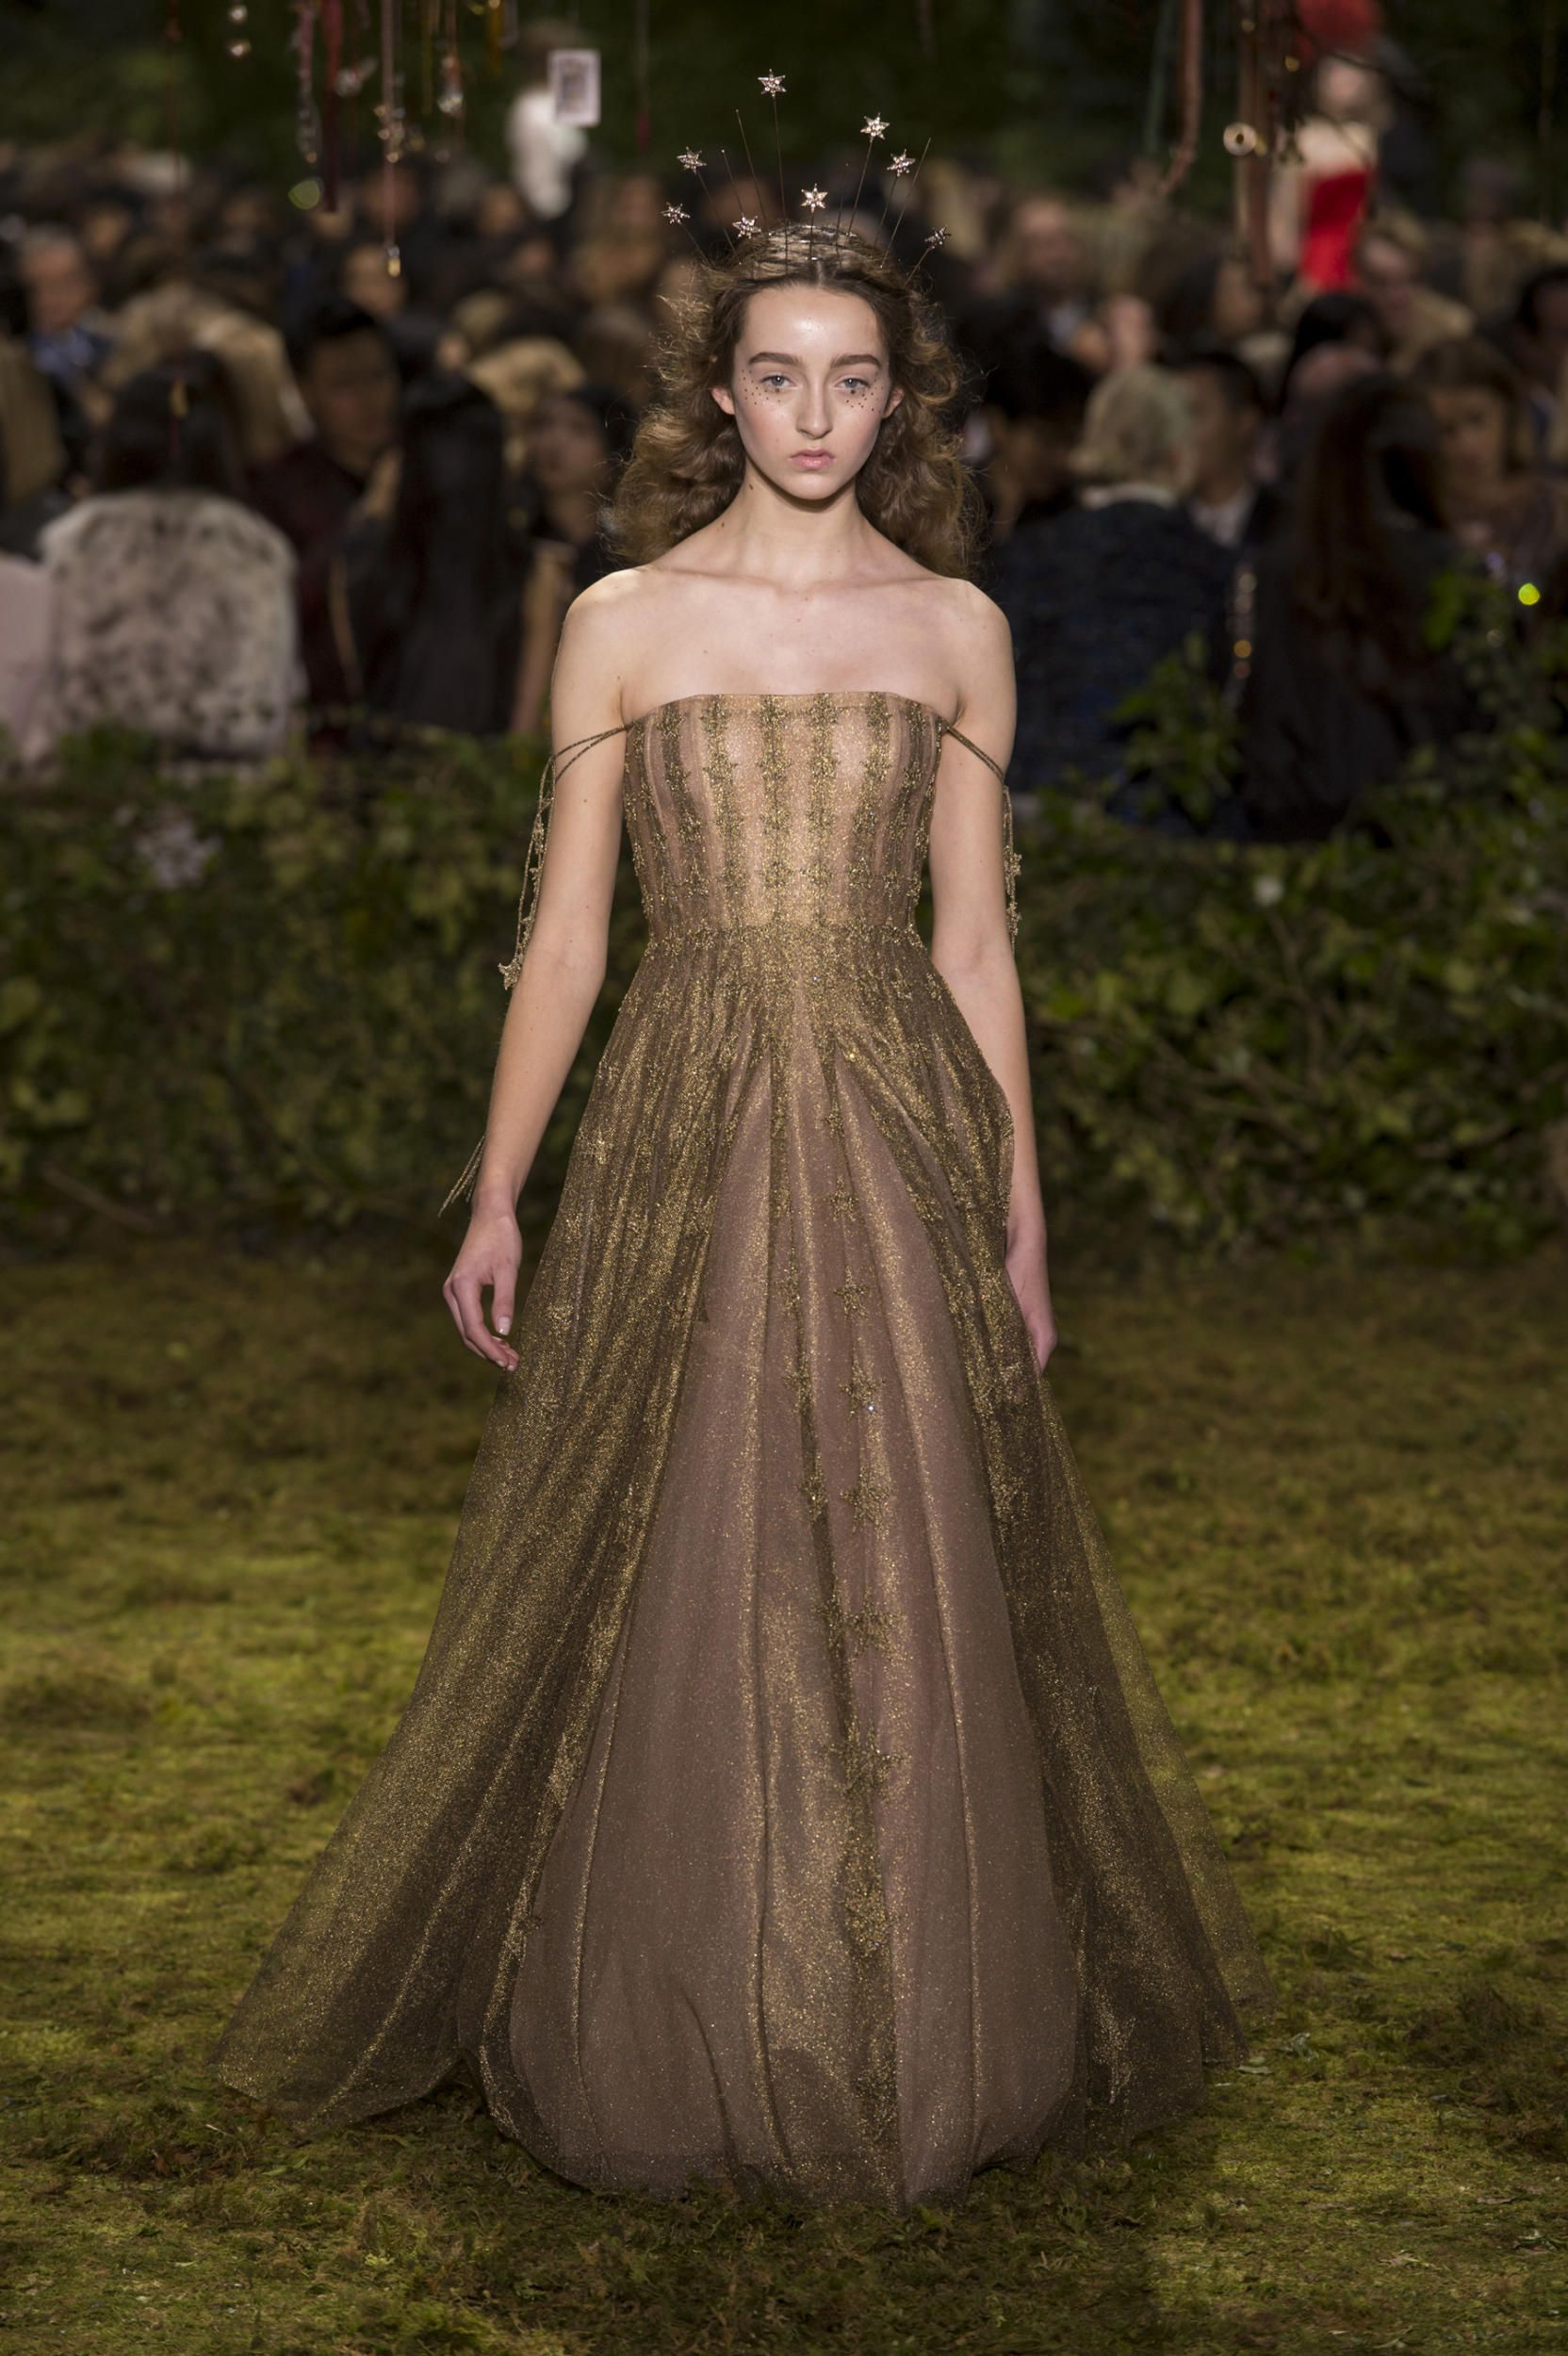 Dior Haute Couture Taps into a Whimsical, Witchy Fairy Tale for